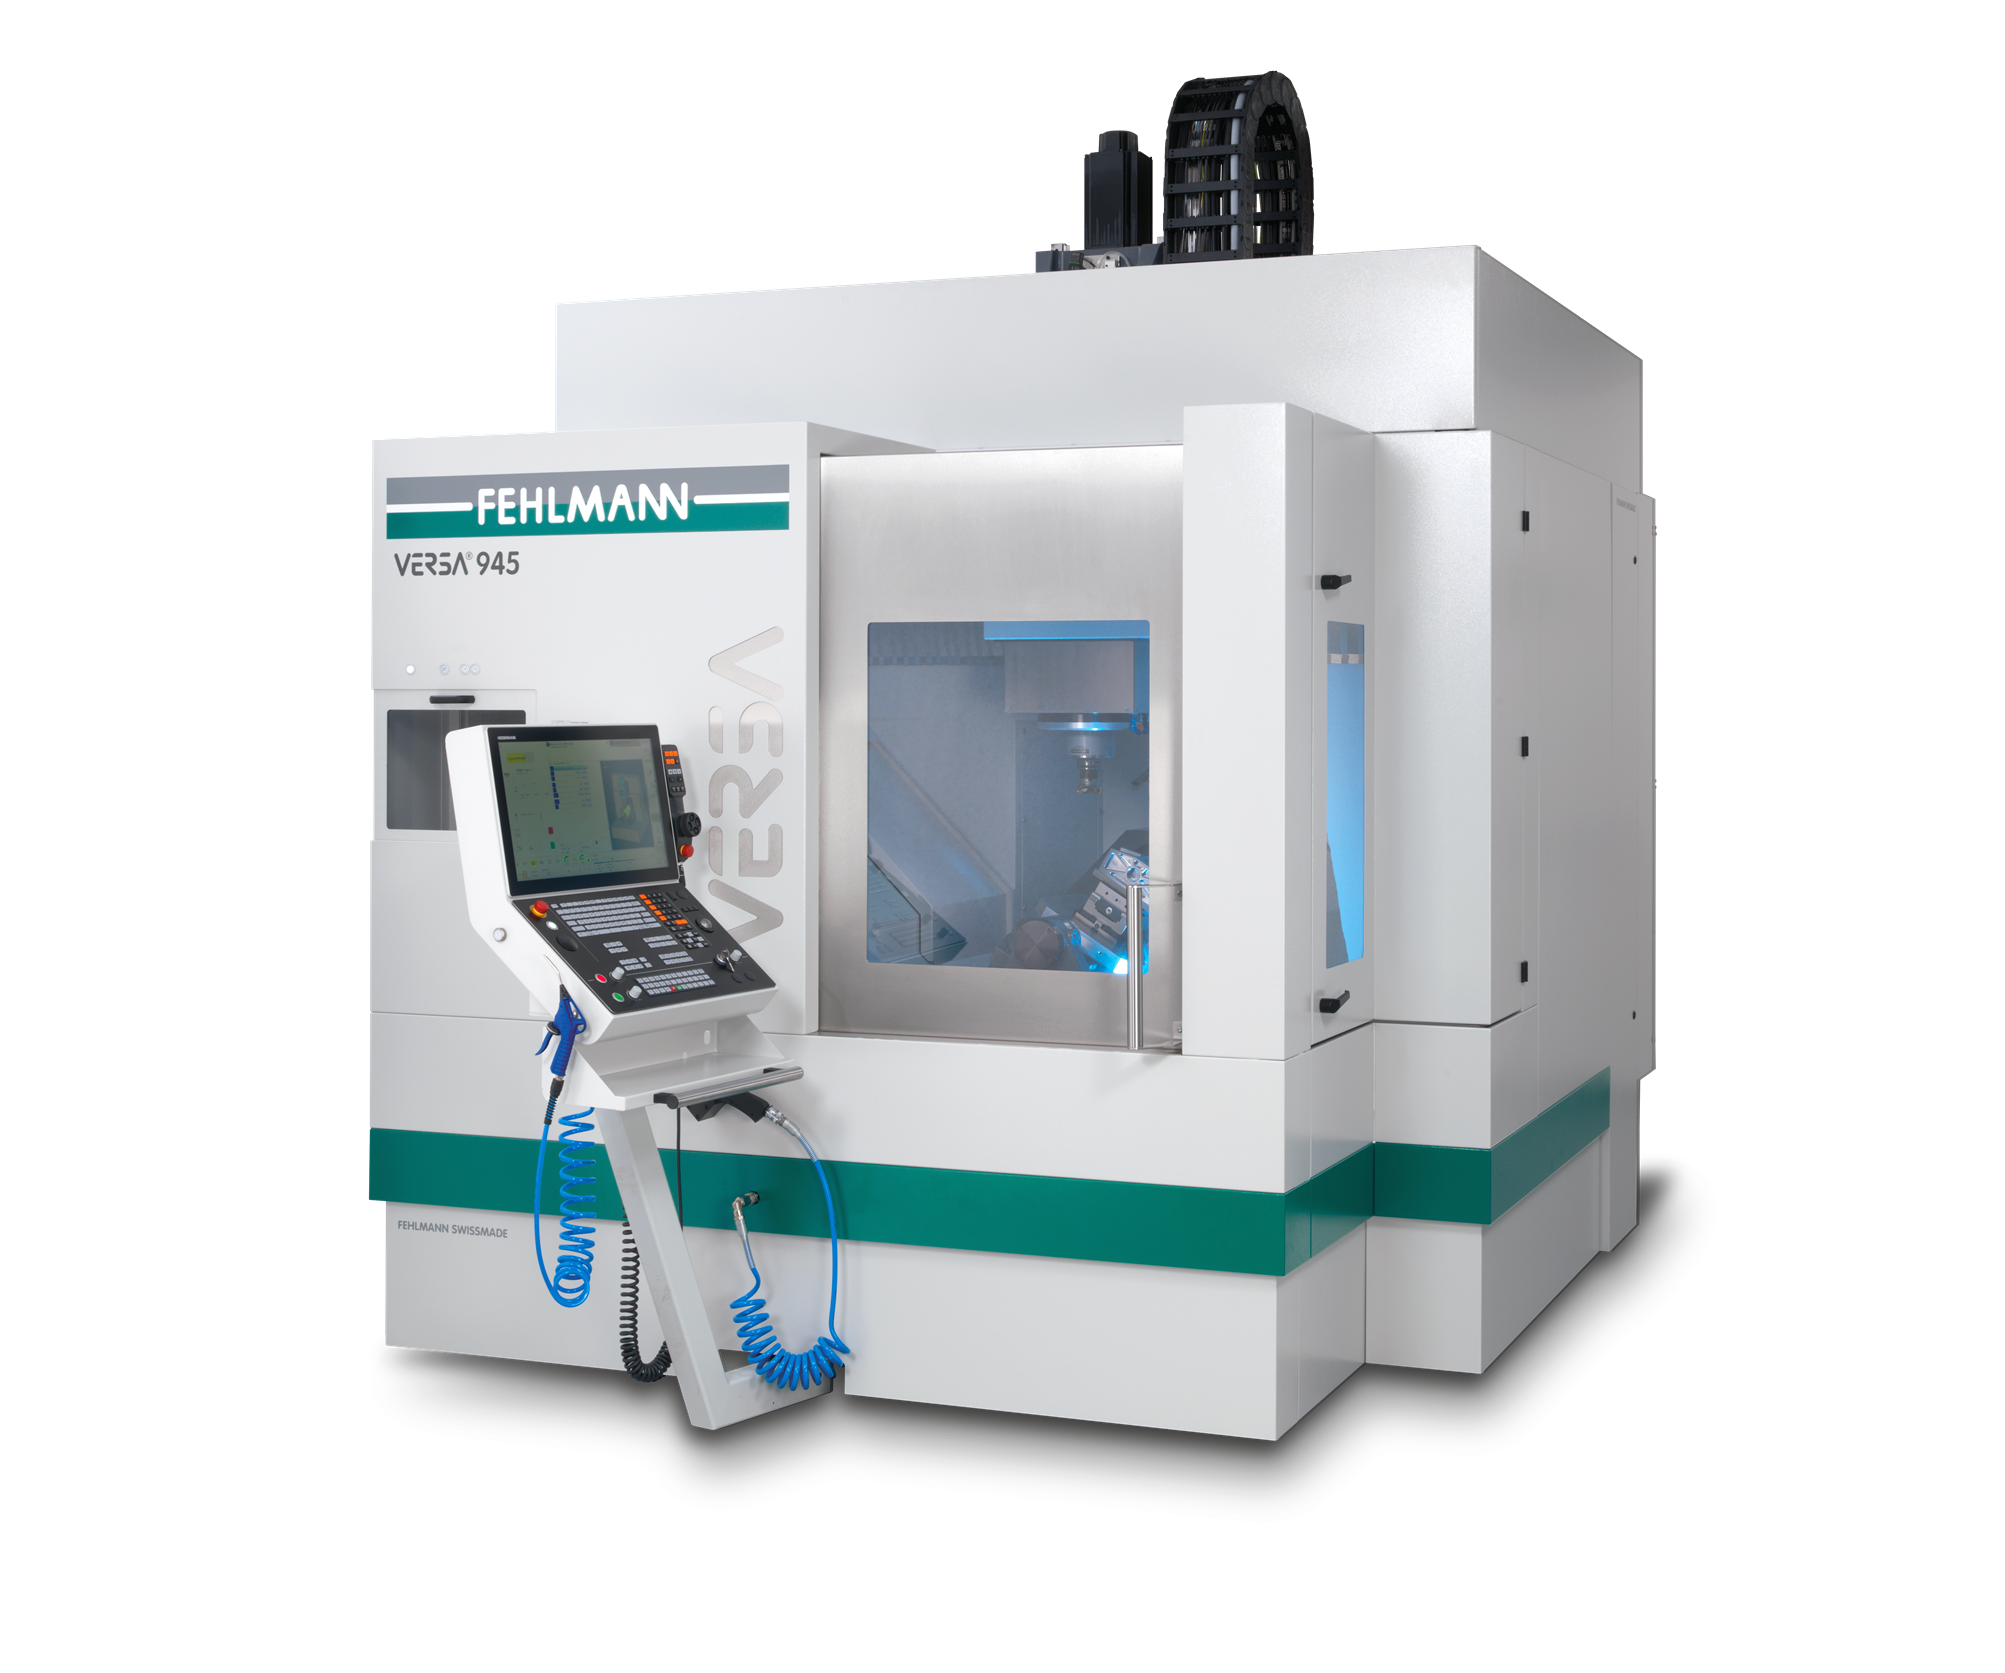 High performance machining center in portal design VERSA 945, for highly precise and dynamic 5-axis machining of workpieces with a swing circle of up to Ø 650 mm